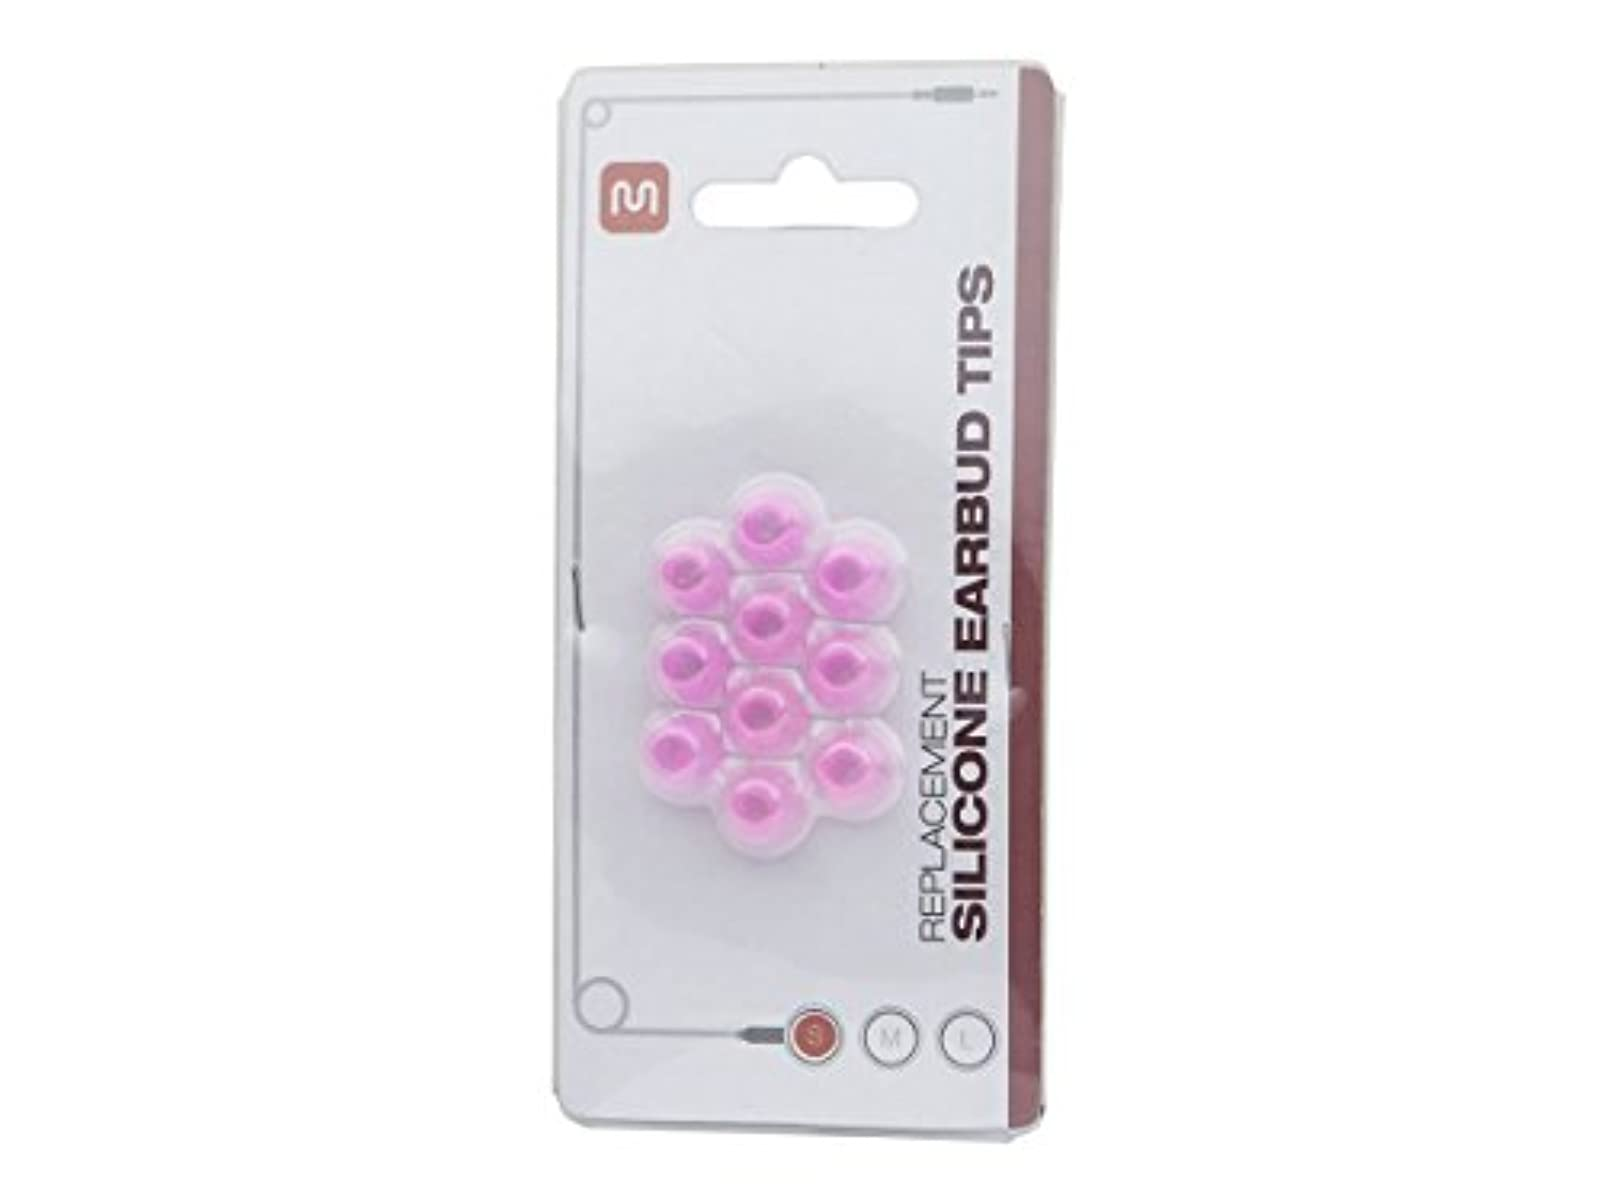 11901 Replacement Silicone Eartips For Most Earbuds-In-Ear Earphones-Pink Small